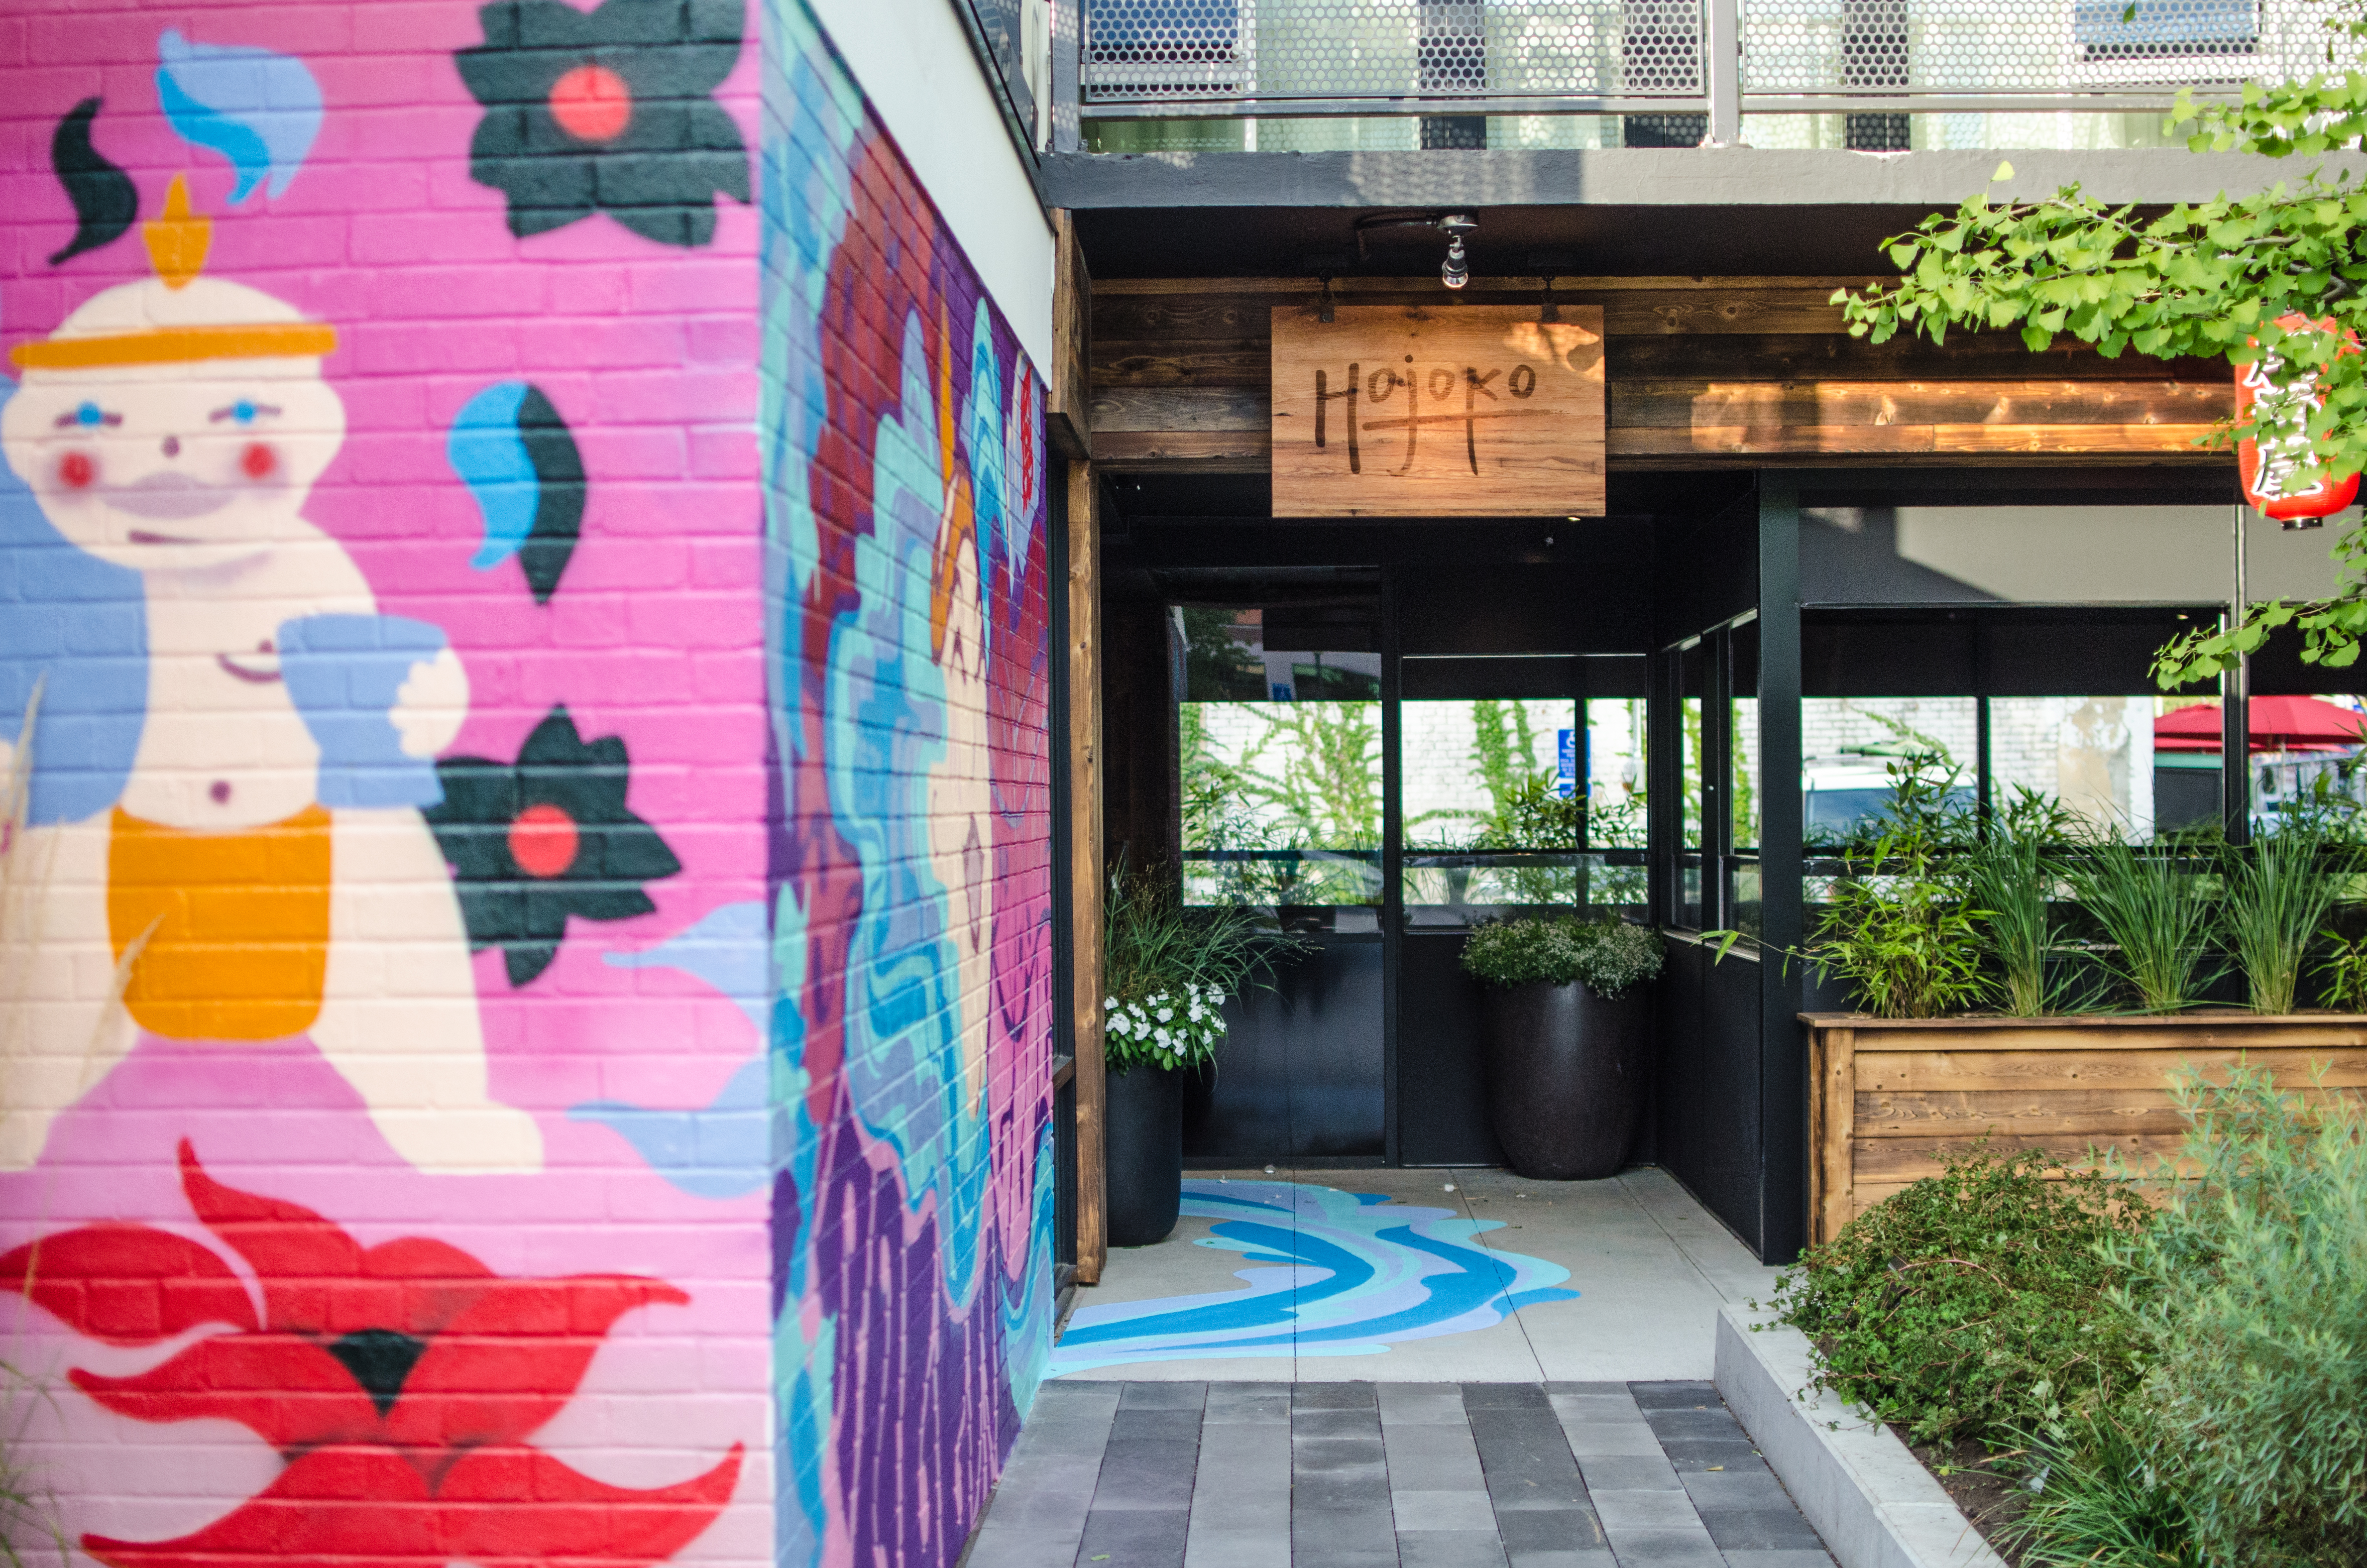 A colorful painted mural of a cartoonish sumo wrestler covers a brick wall leading towards the entrance of Hojoko in Boston's Fenway neighborhood